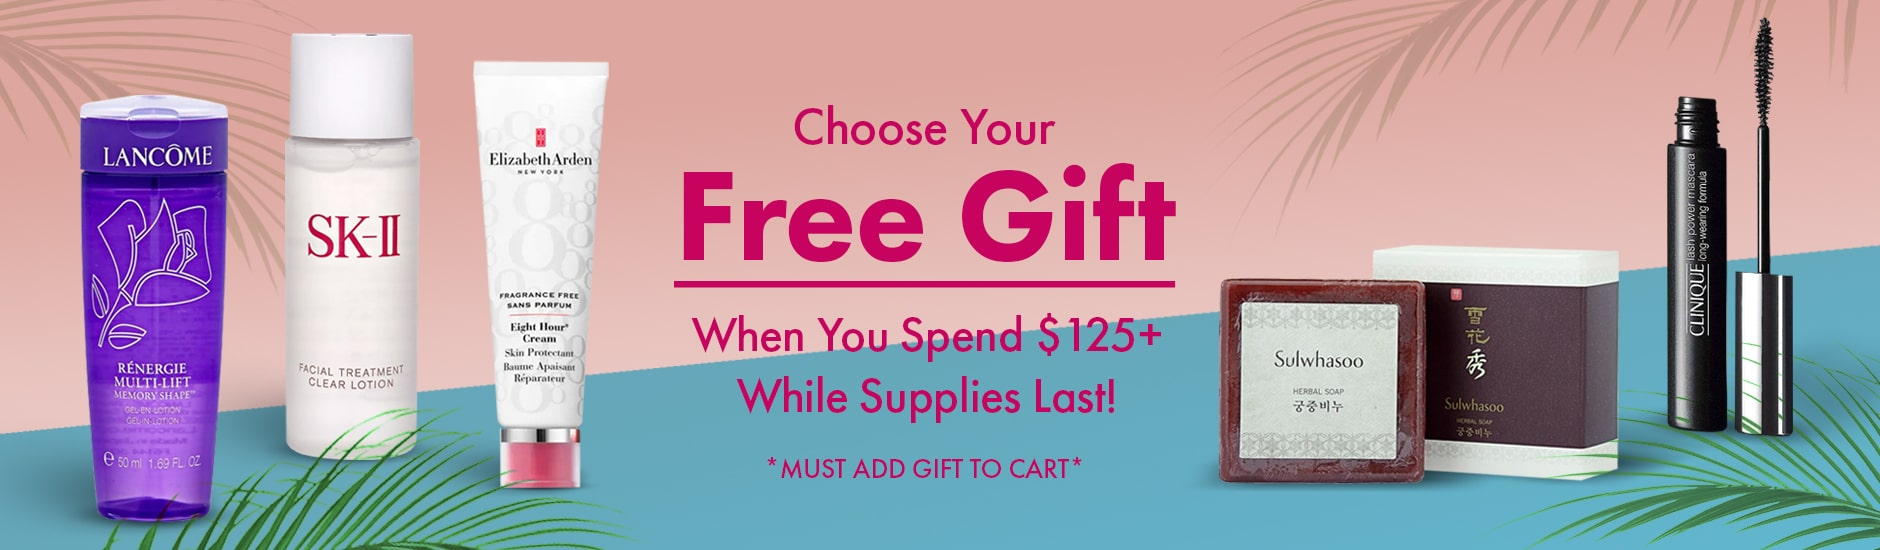 Free Gift With Purchase Banner